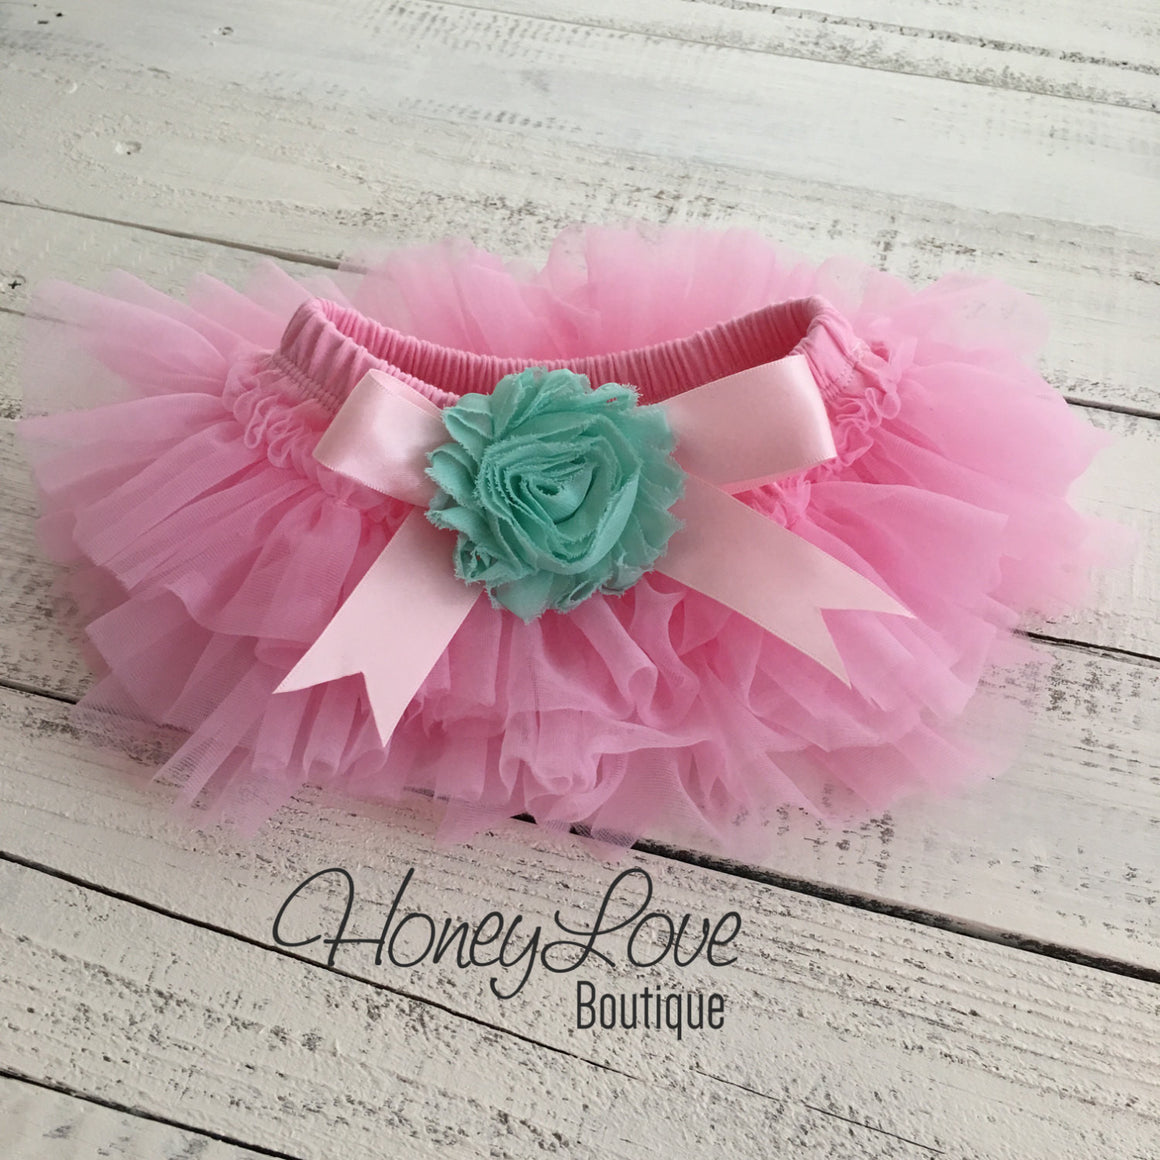 Light Pink and Mint/Aqua Embellished tutu skirt bloomers and headband - HoneyLoveBoutique